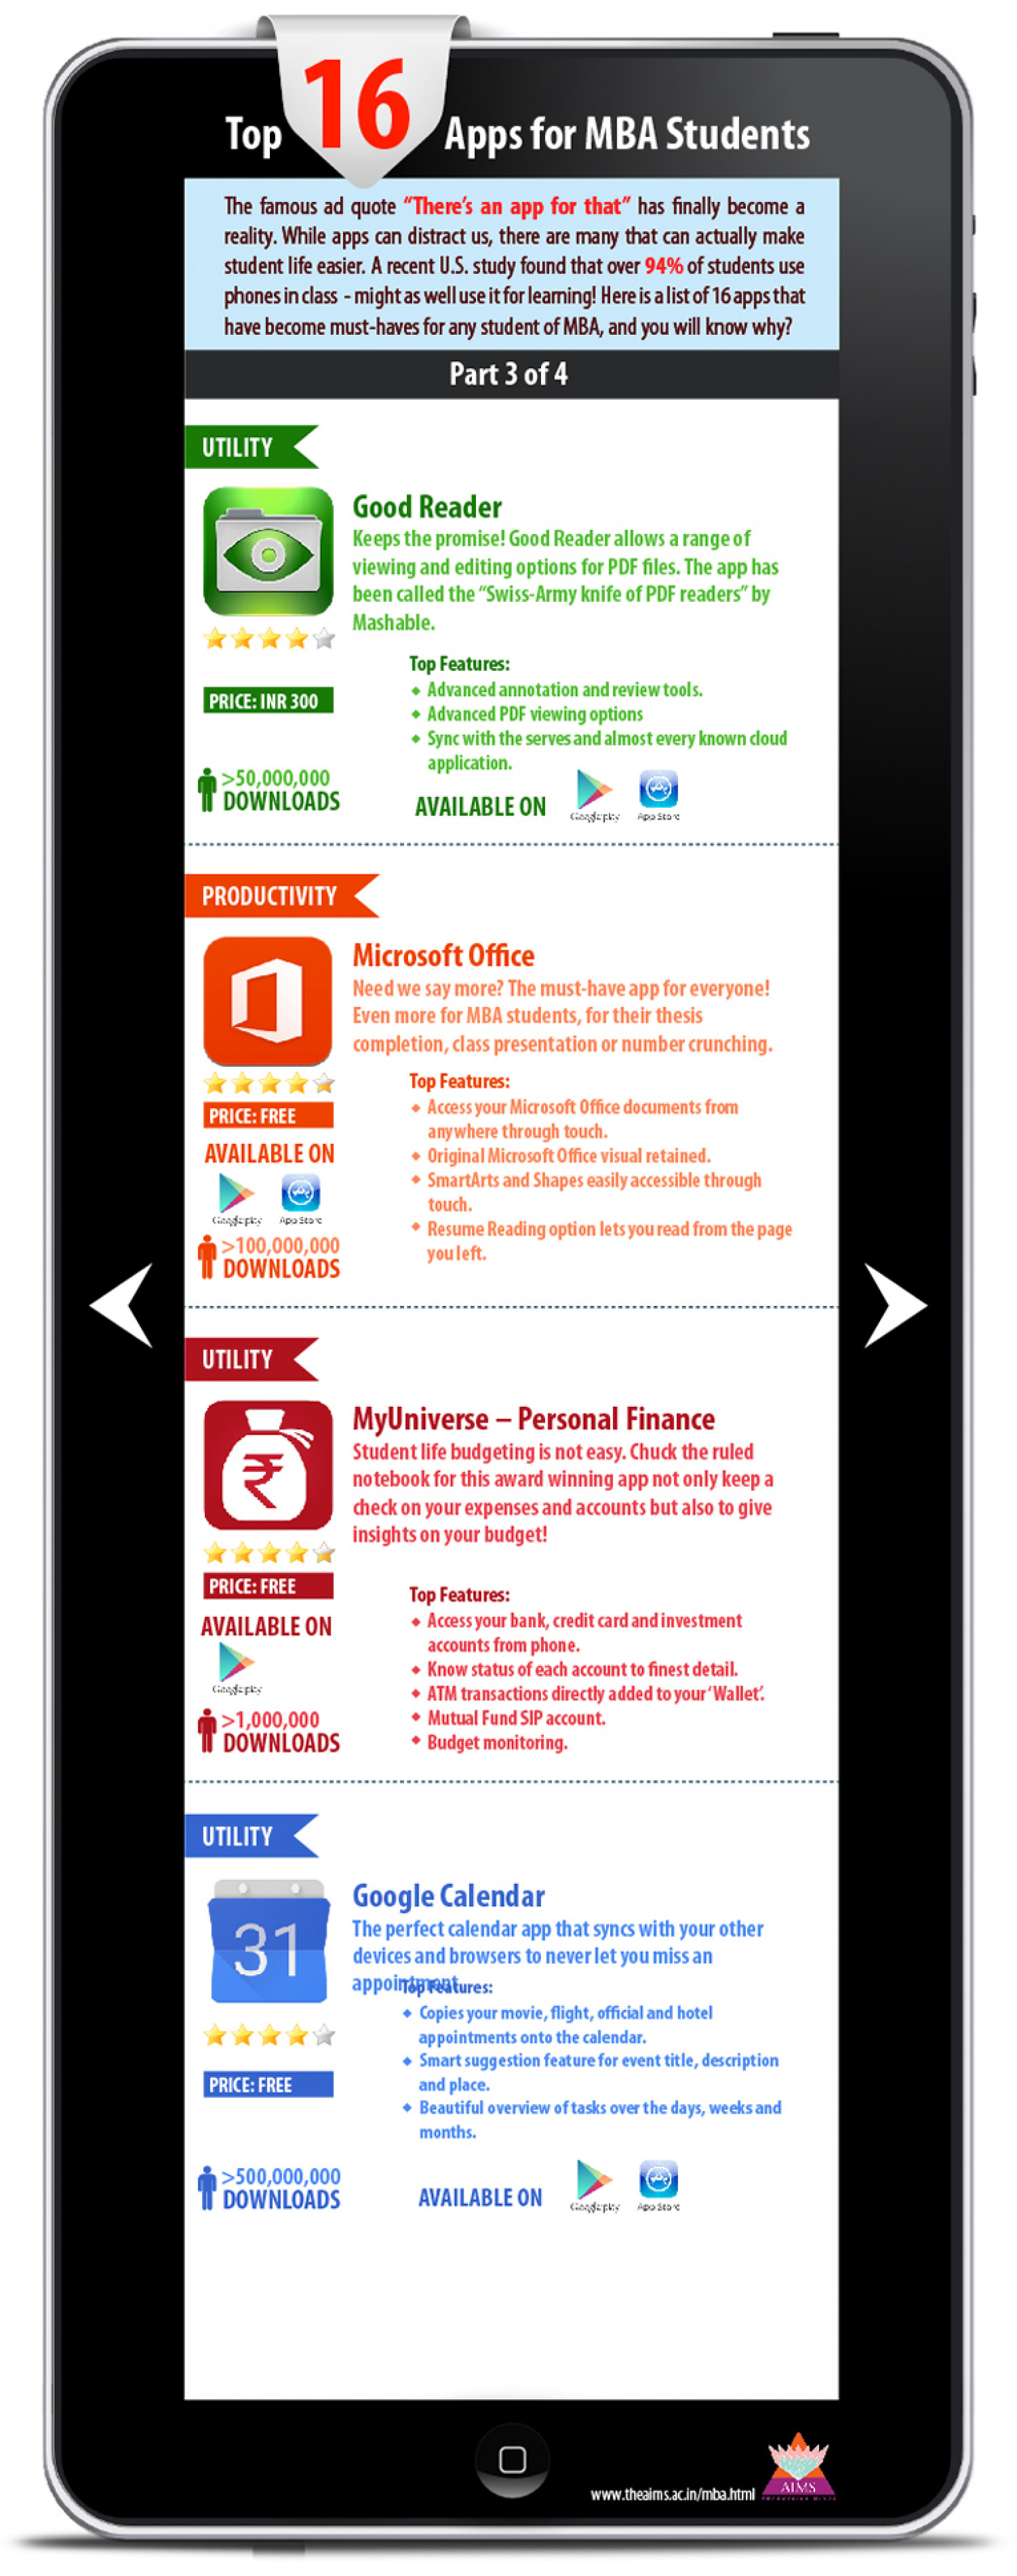 Top 16 Mobile Apps for MBA Students - Part 3 of 4 Infographic